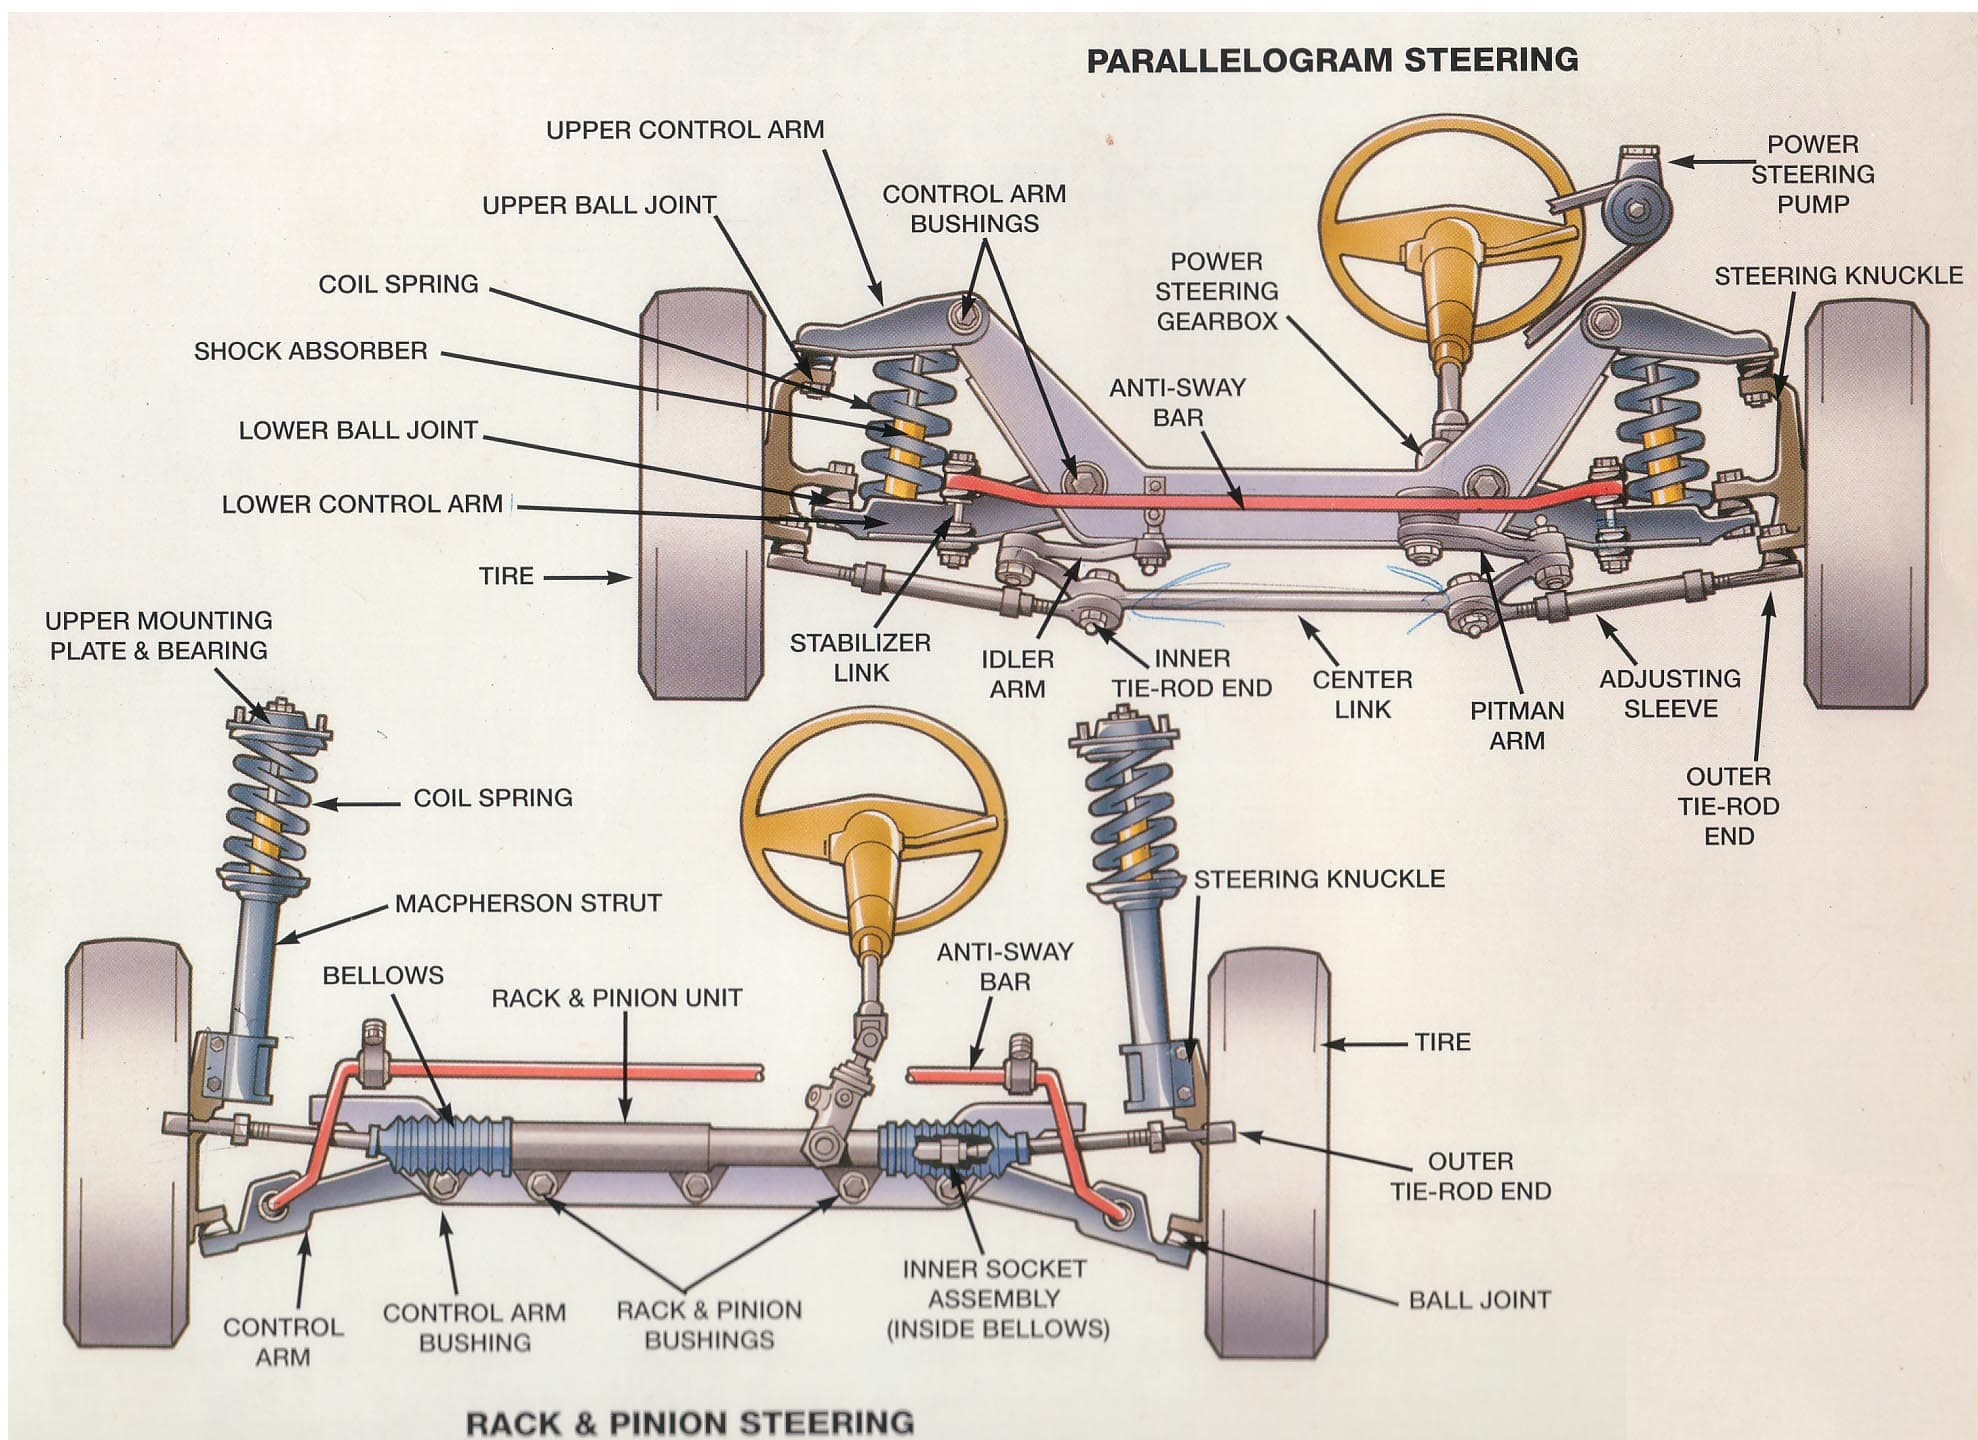 Steering Diagram Schematic Steeringdiagram